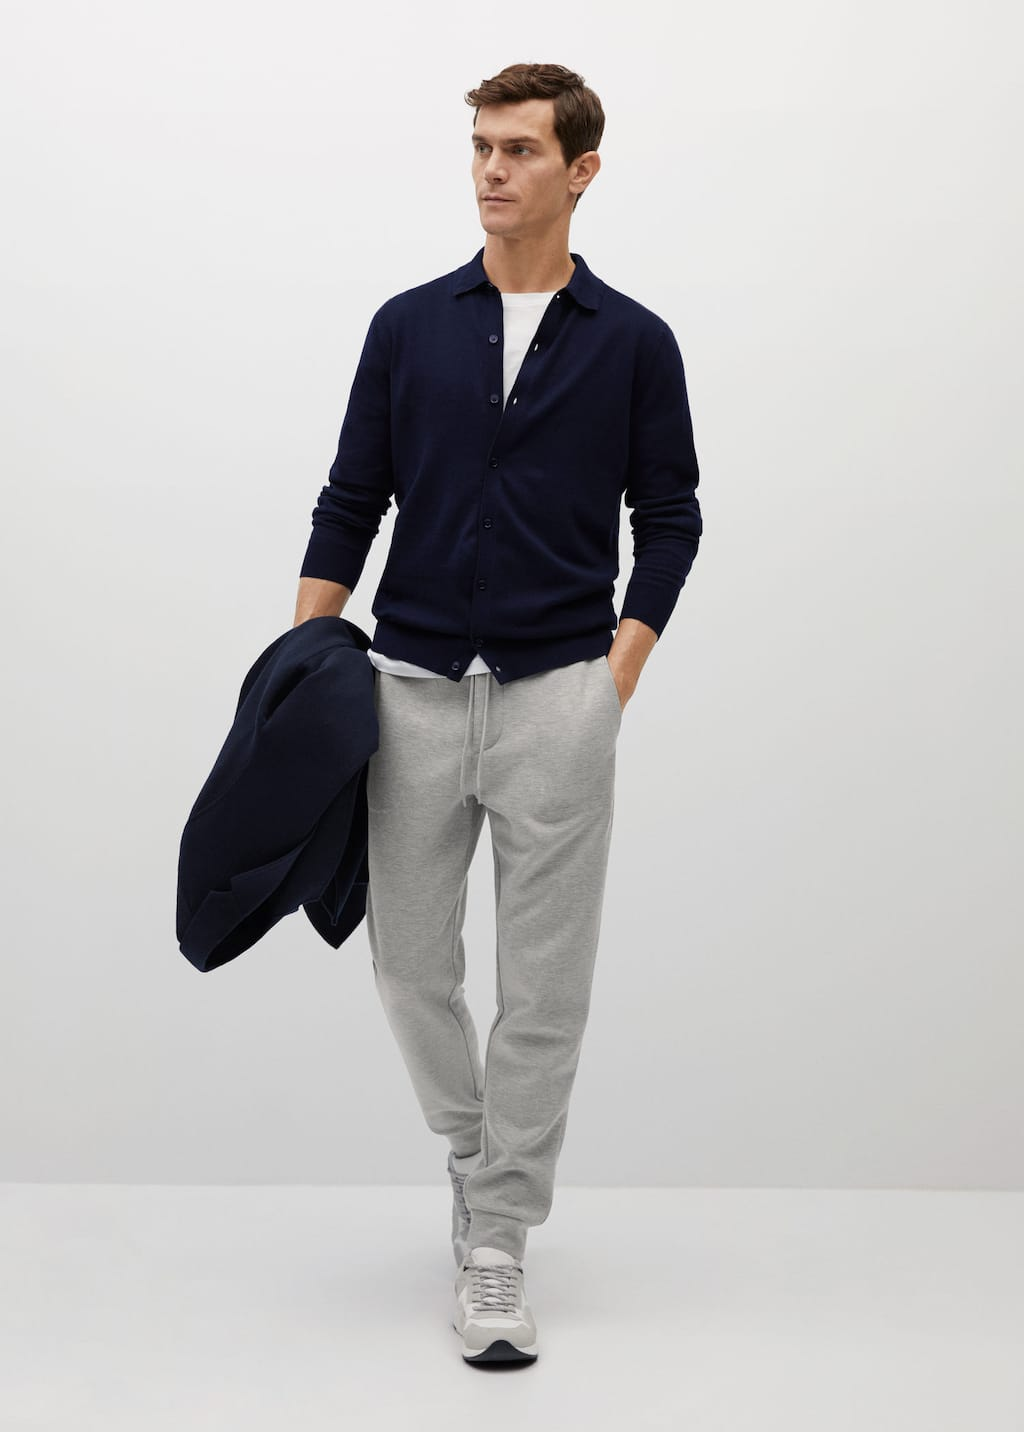 Sweatpants styled with a t-shirt and a knitted polo.